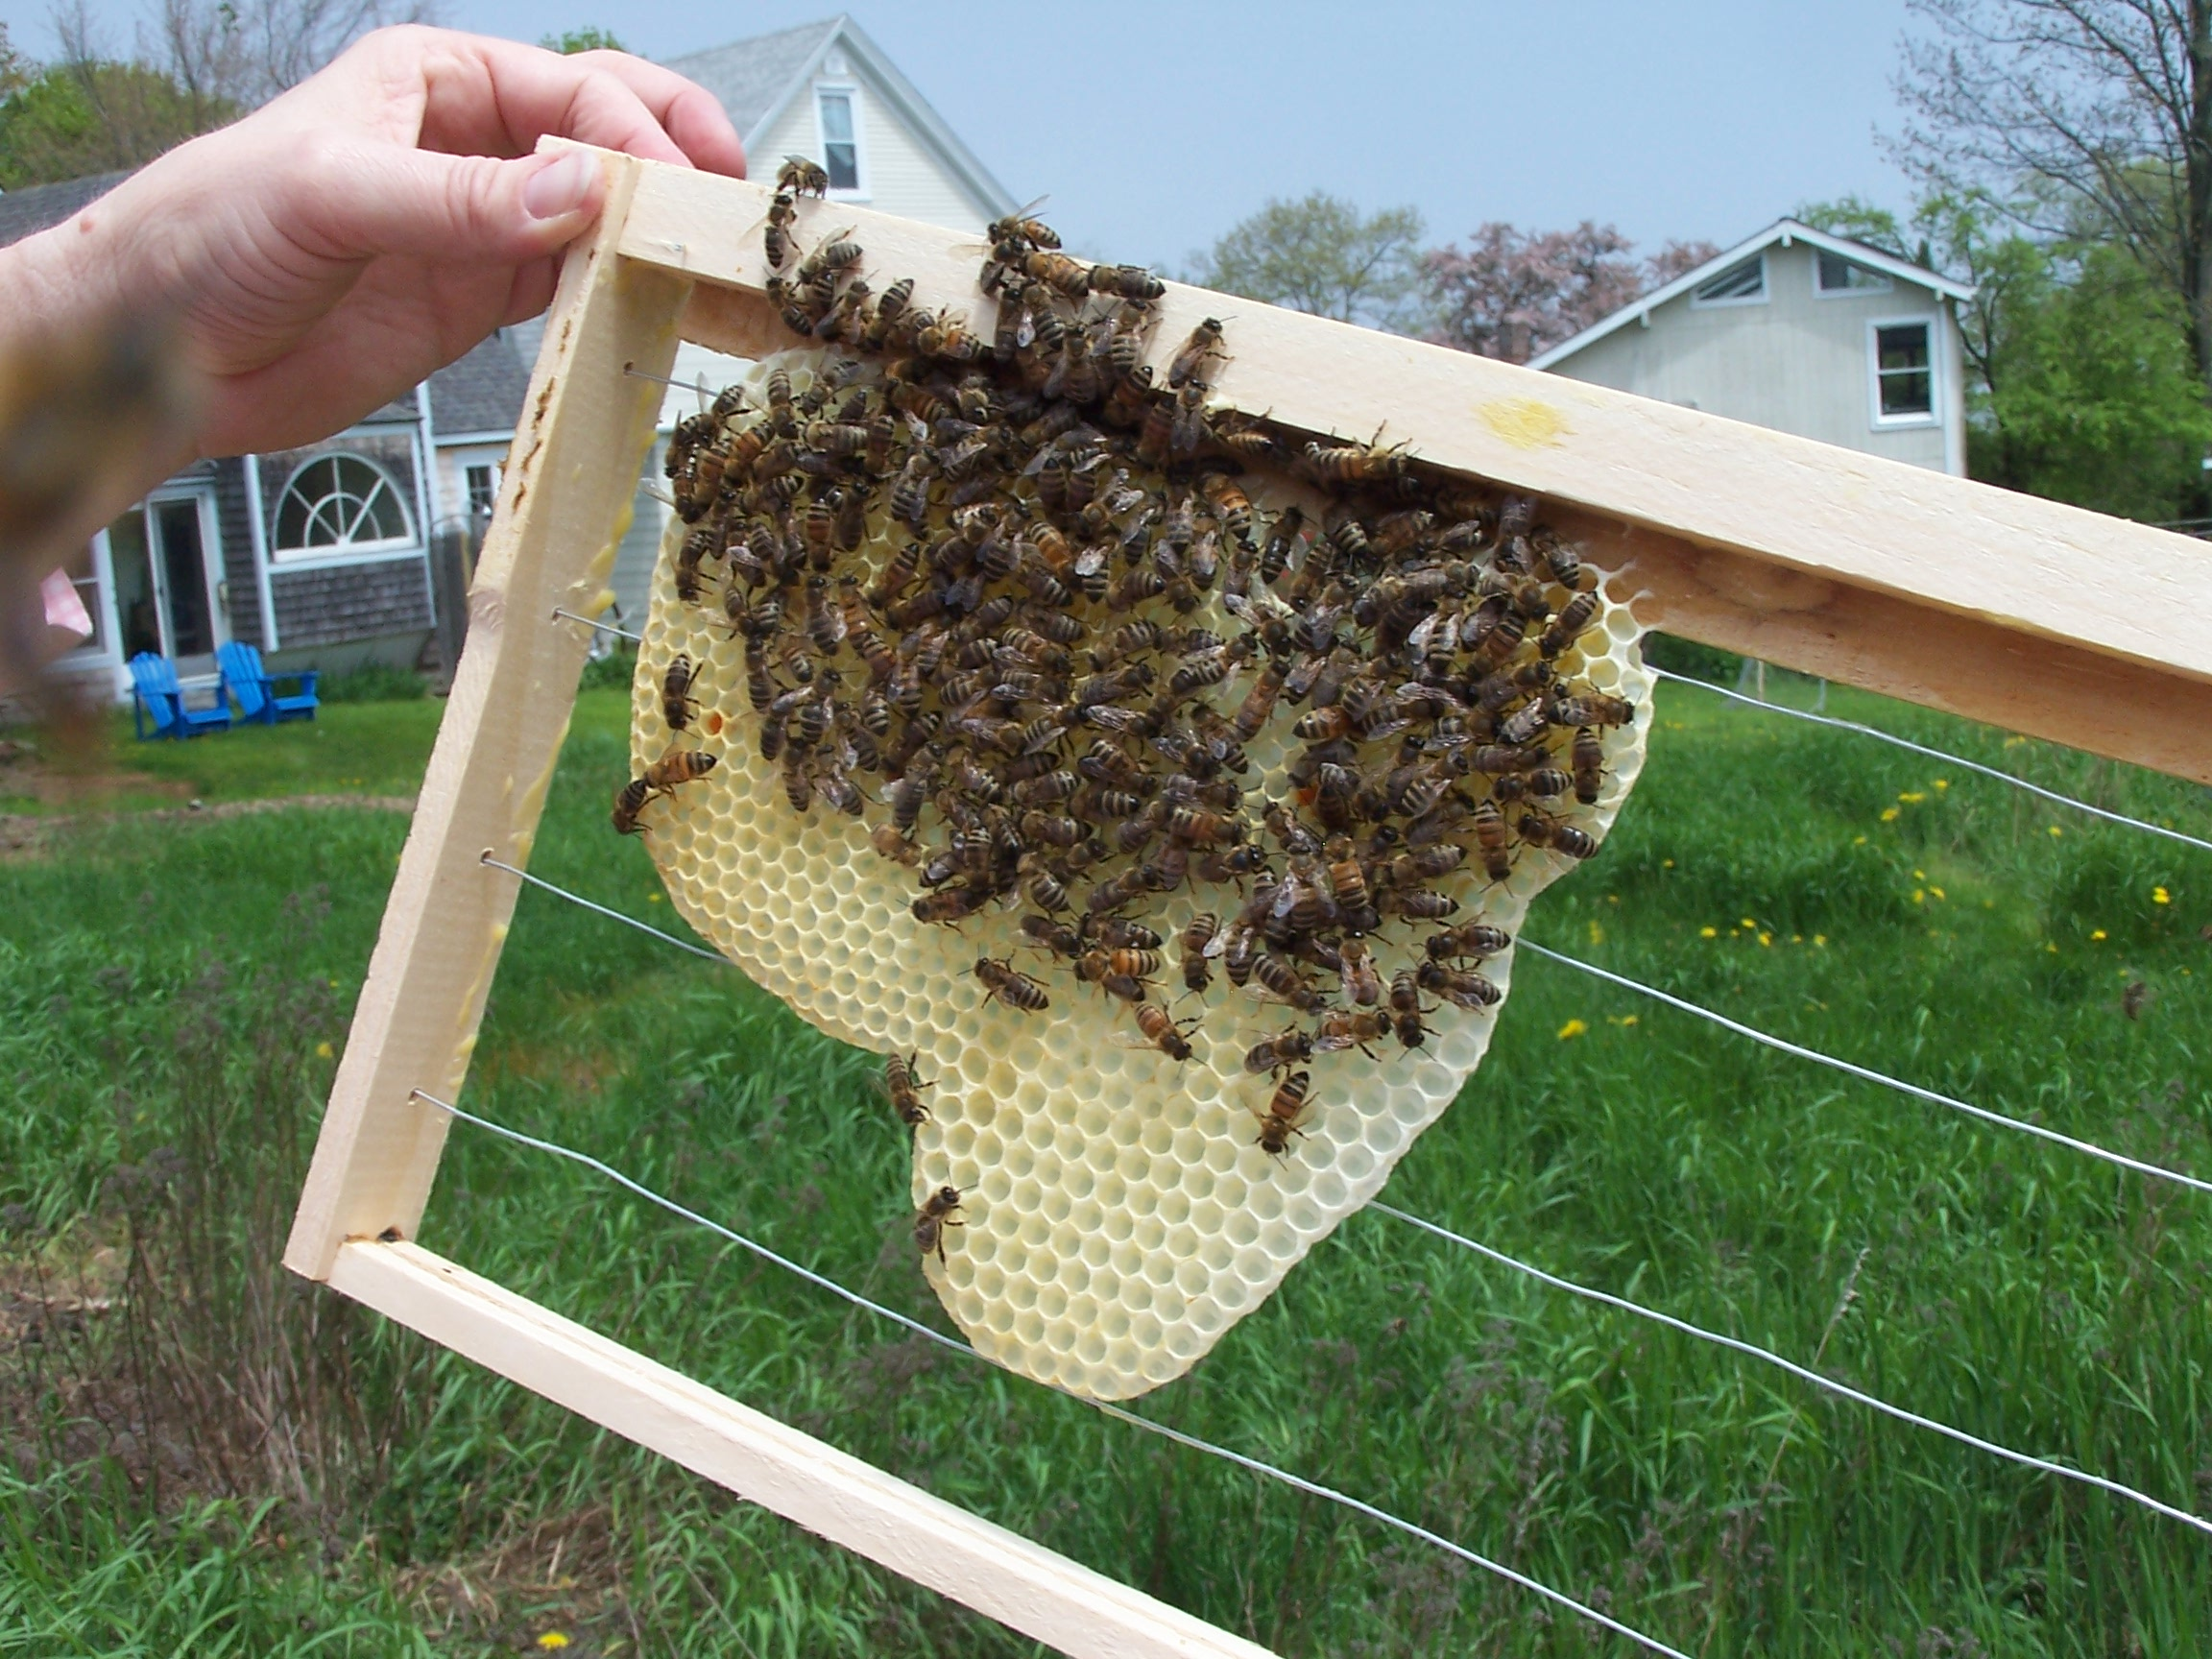 What do bees make wax